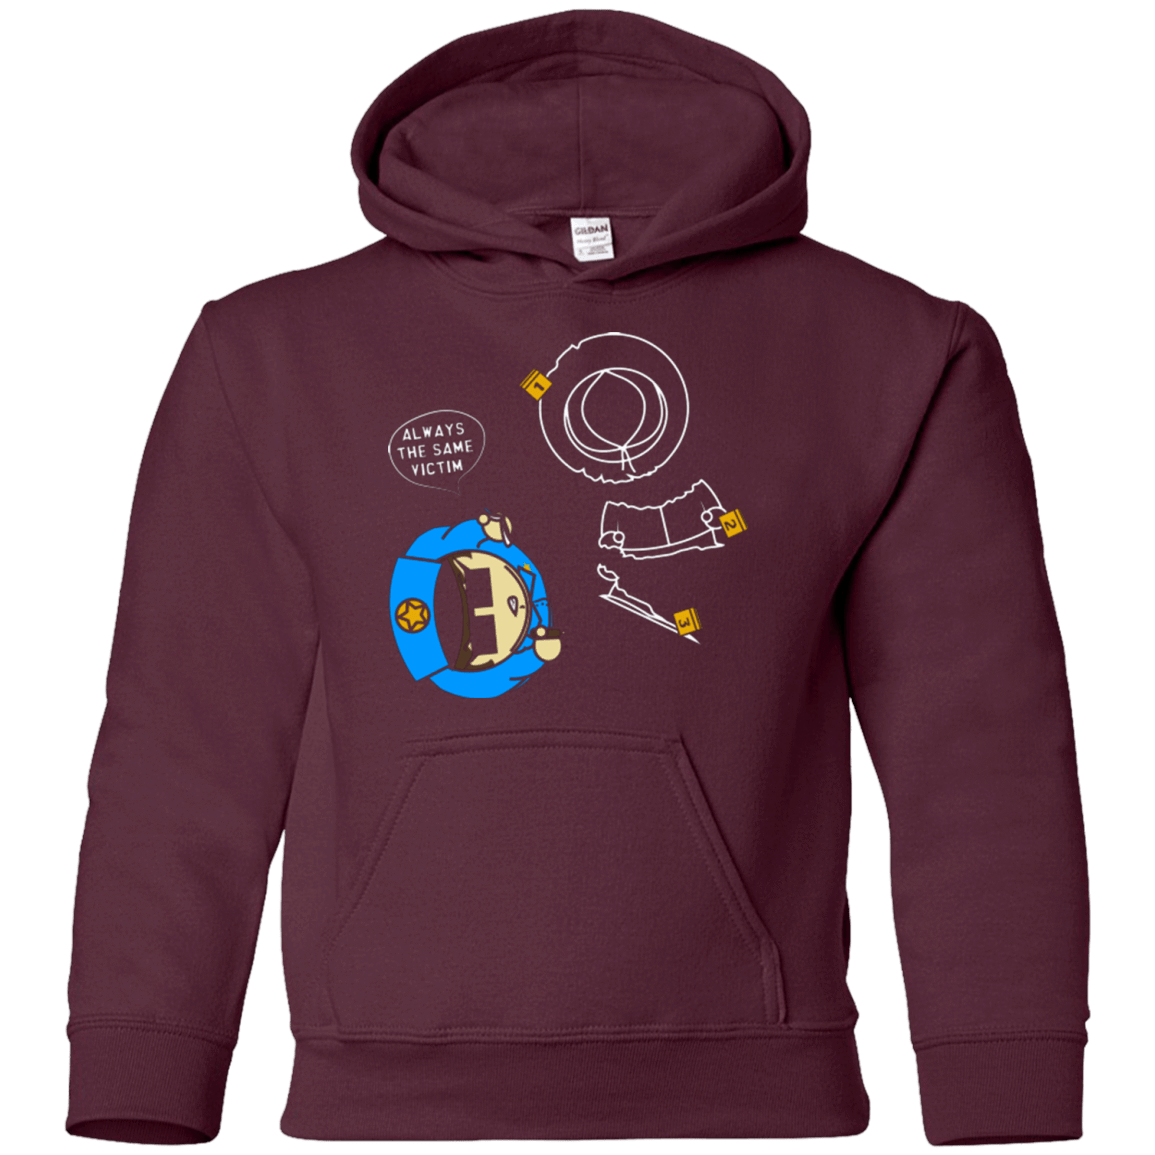 Sweatshirts Maroon / YS ALWAYS THE SAME VICTIM Youth Hoodie